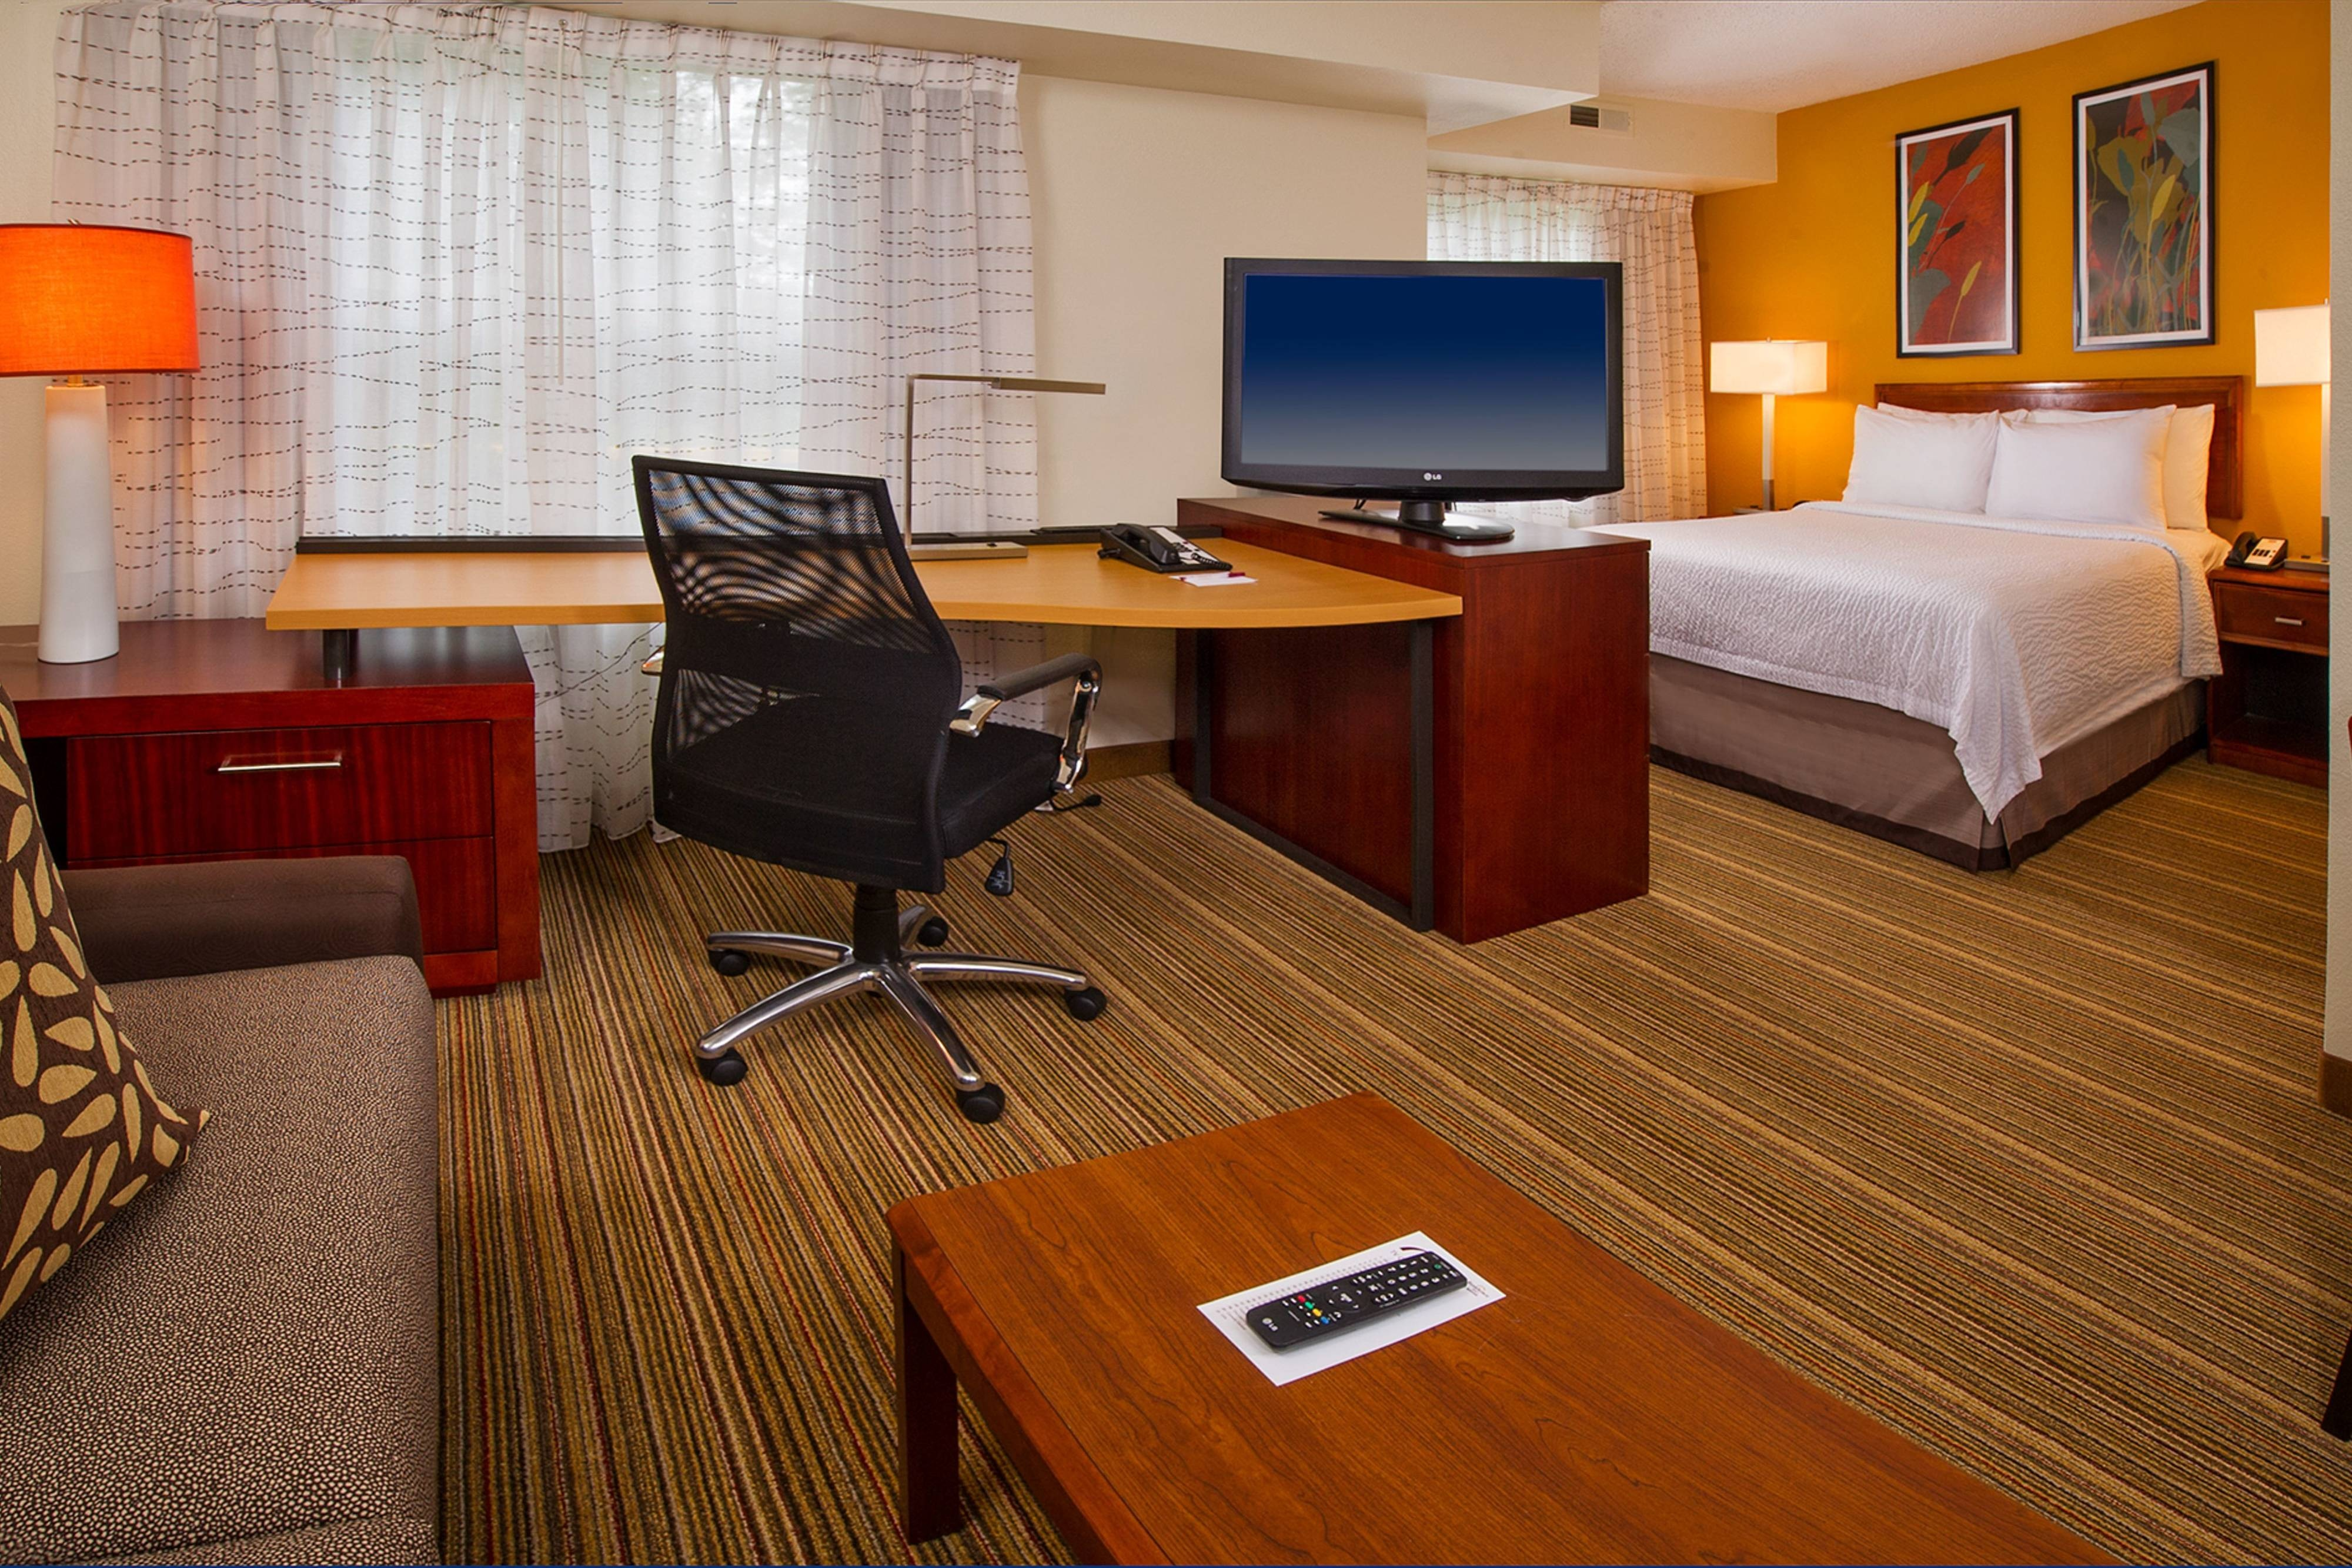 Hotels near BWI Airport in Linthicum, MD | Residence Inn Baltimore ...